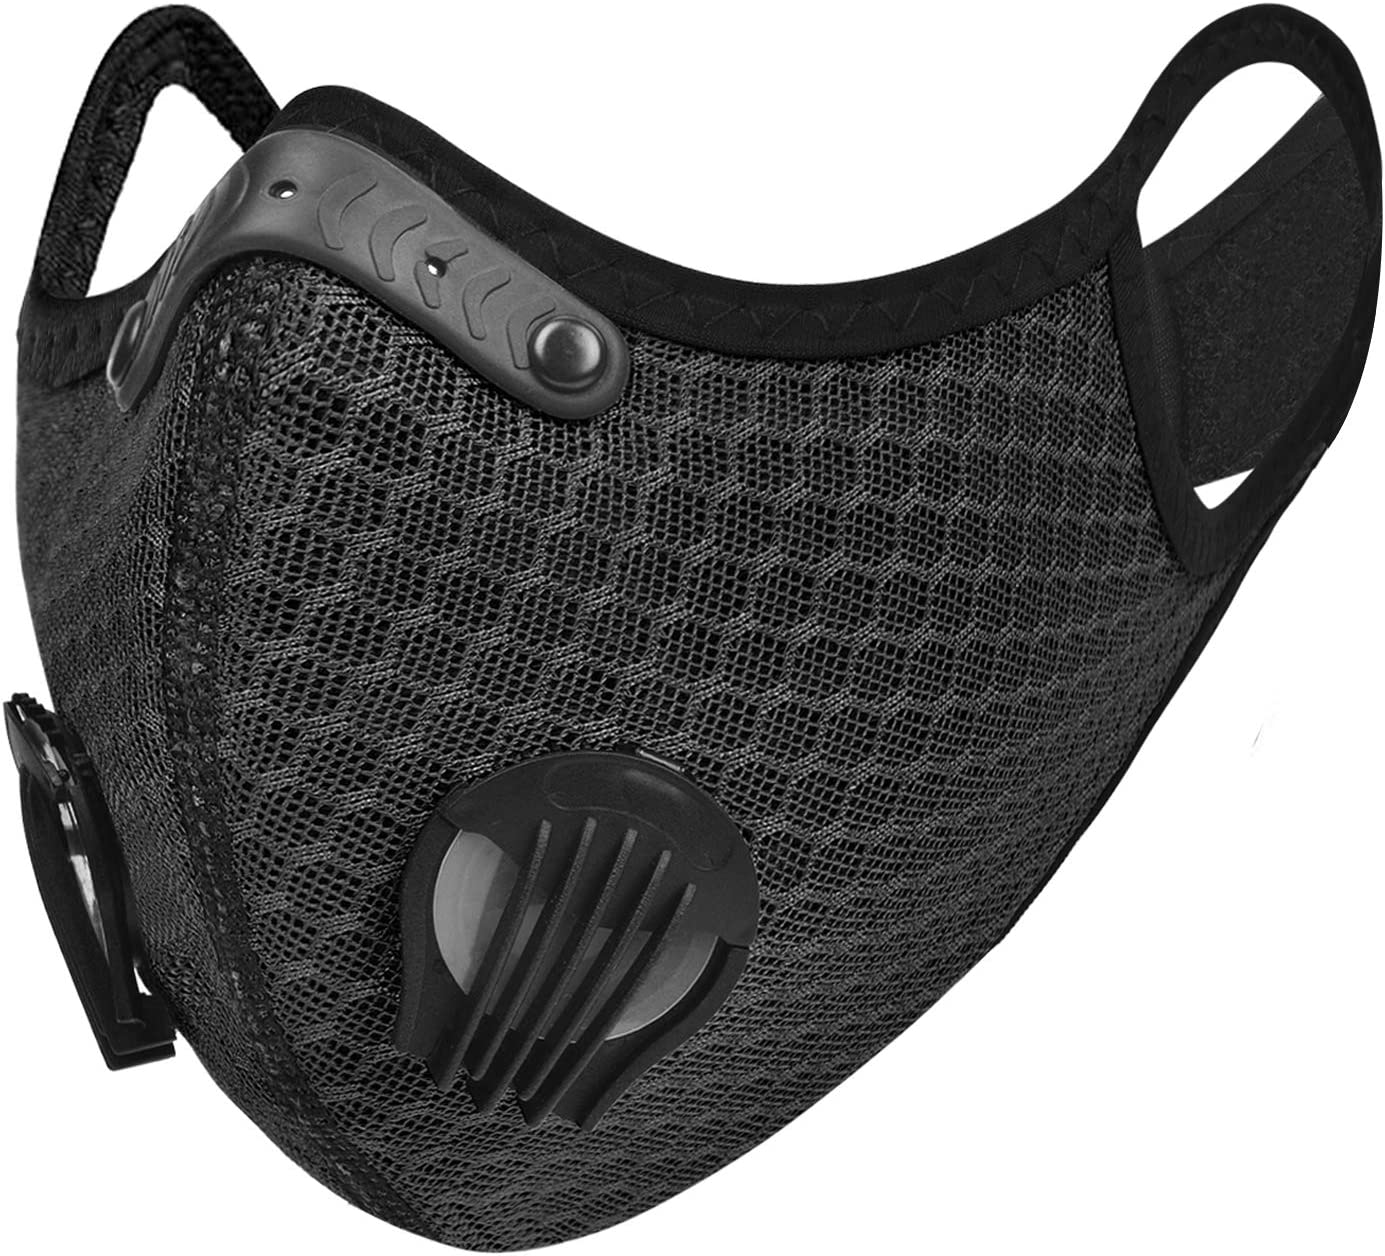 UTOTEBAG Breathable Face Mask with Valves Ventilated Sports Elevation Masks for Men Women Workout Exercise Training Gym, Black : Sports & Outdoors